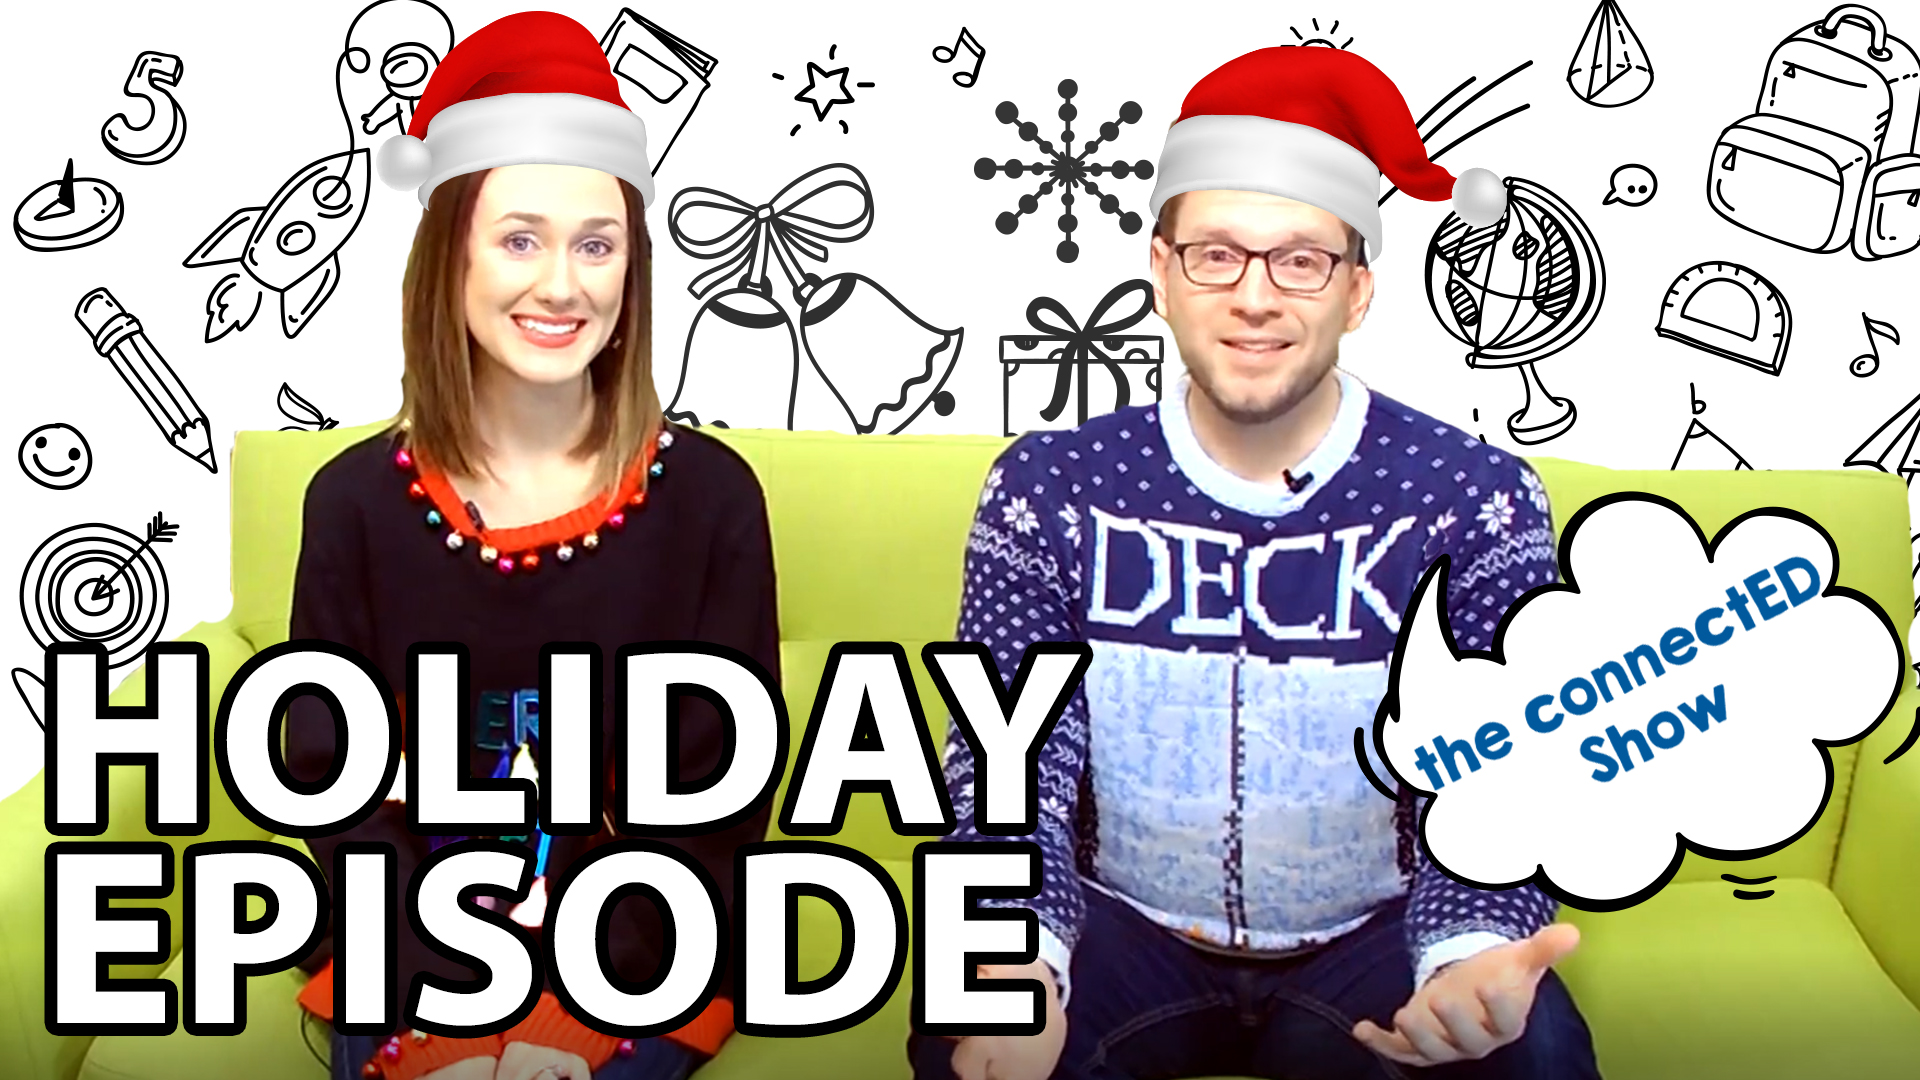 Hosts Mat and Casey sit on a couch with holiday and school related illustrations surrounding them.